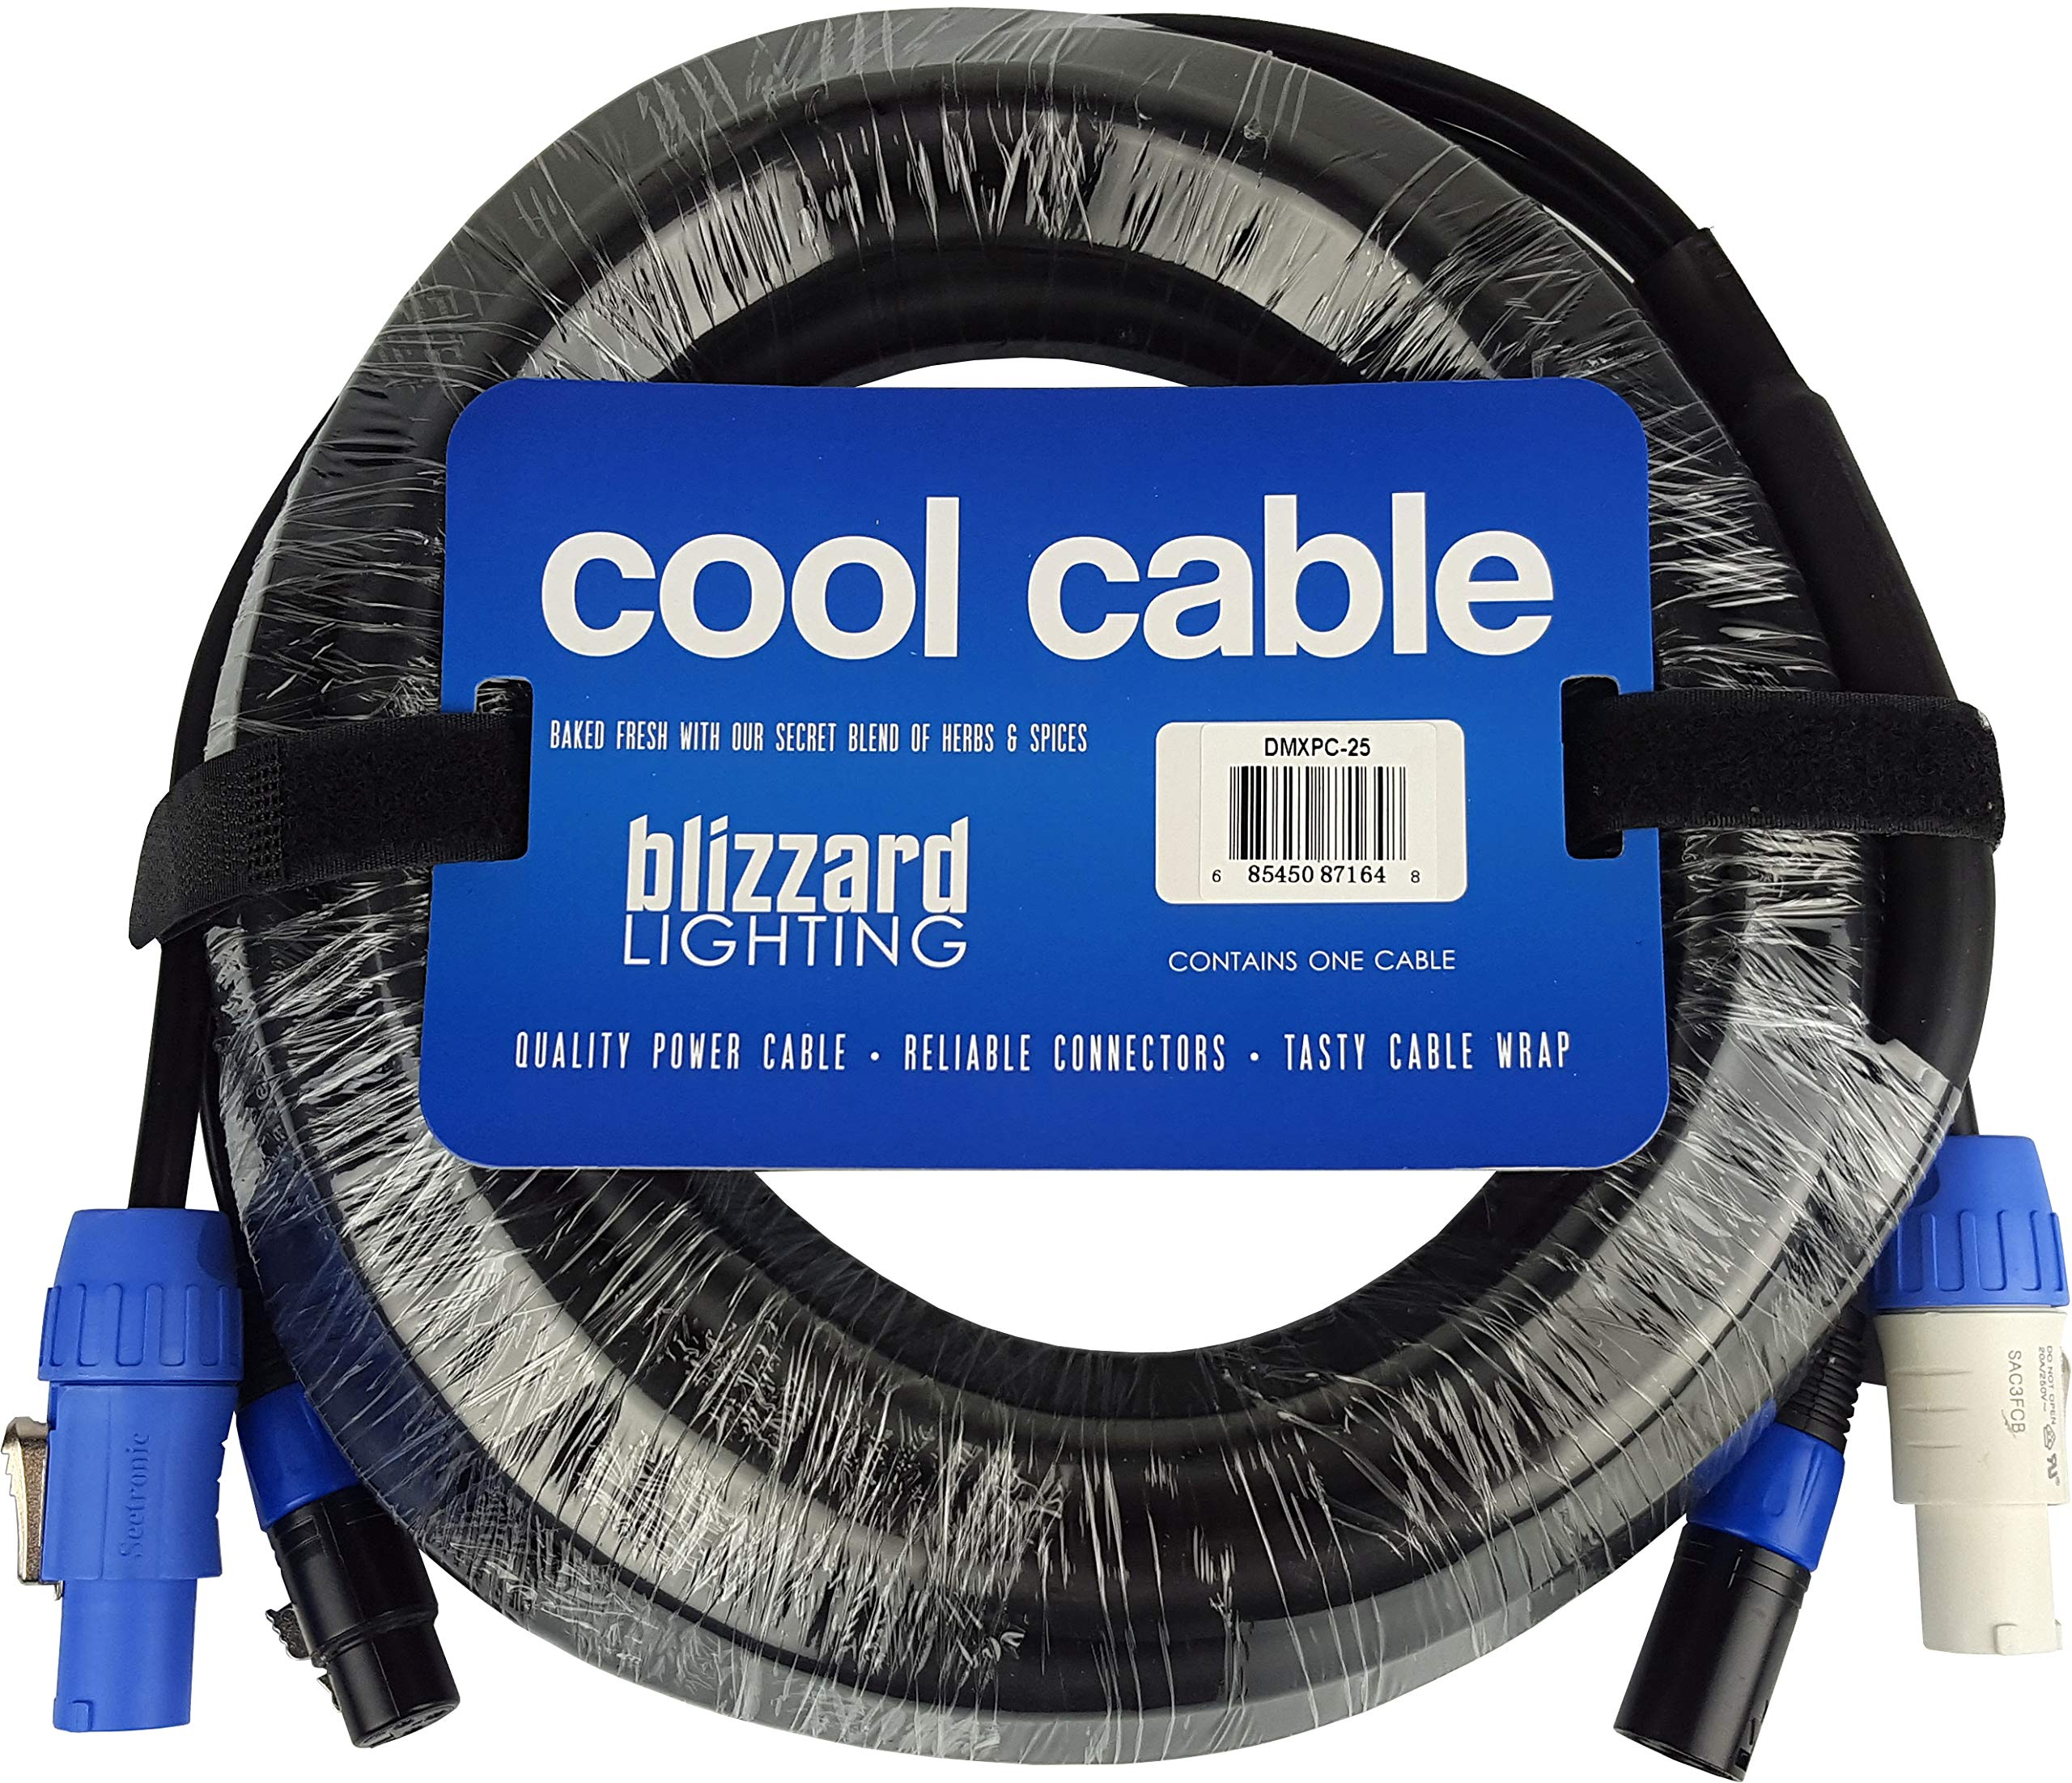 Blizzard Lighting Cool Cables Powercon + DMX Combo (25ft/3-pin) by BLIZZARD LIGHTING